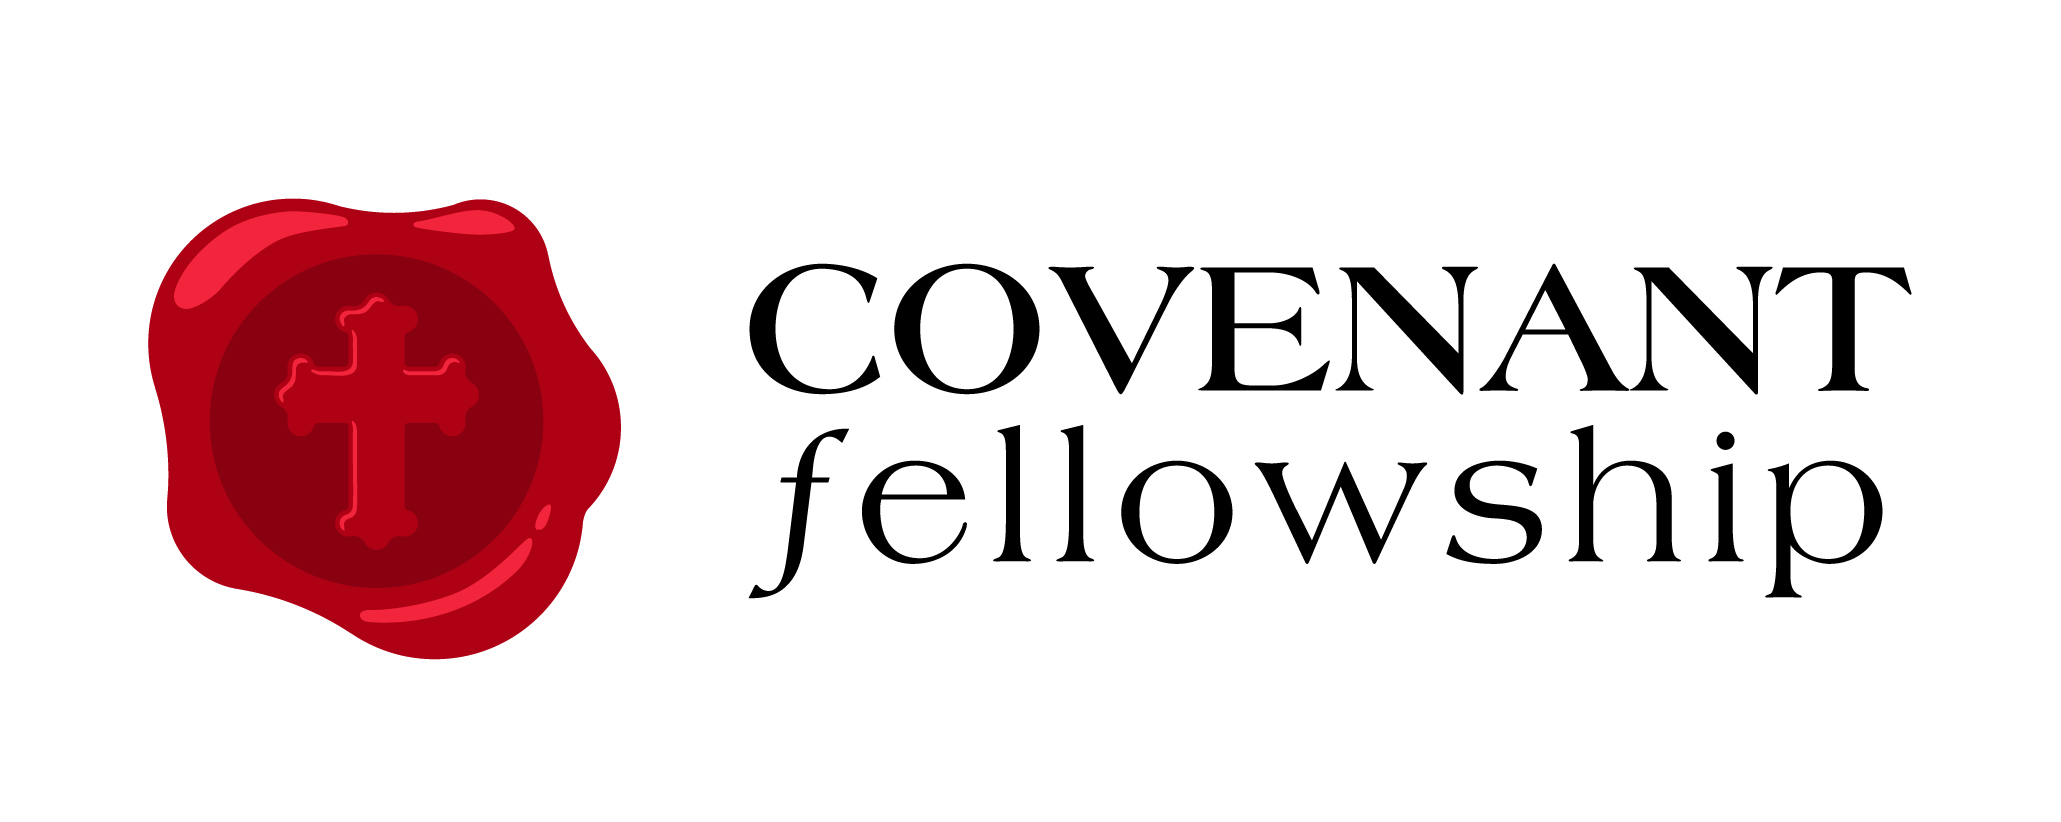 CovenantVersion1rev